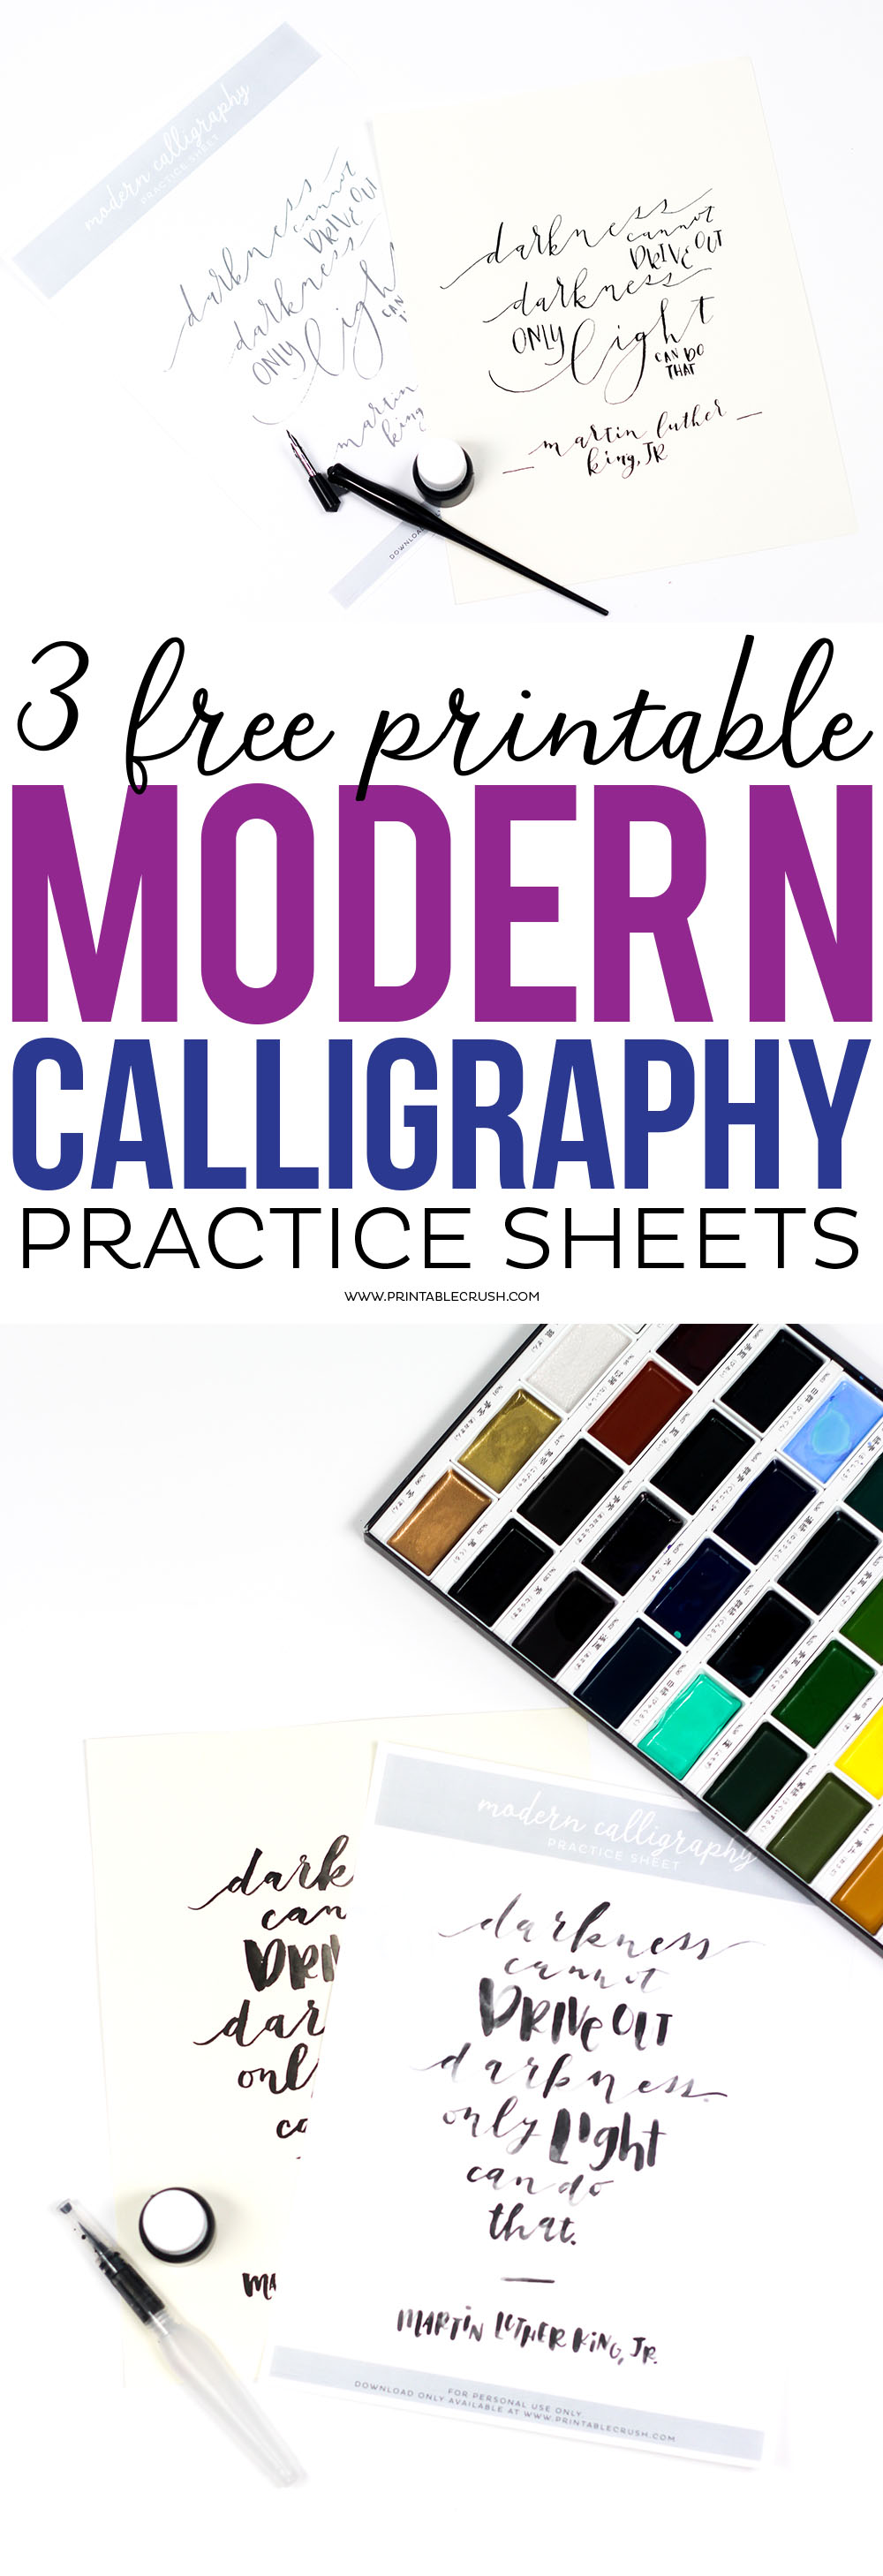 graphic regarding Printable Calligraphy Practice Sheets named 3 Absolutely free Printable Ground breaking Calligraphy Educate Sheets